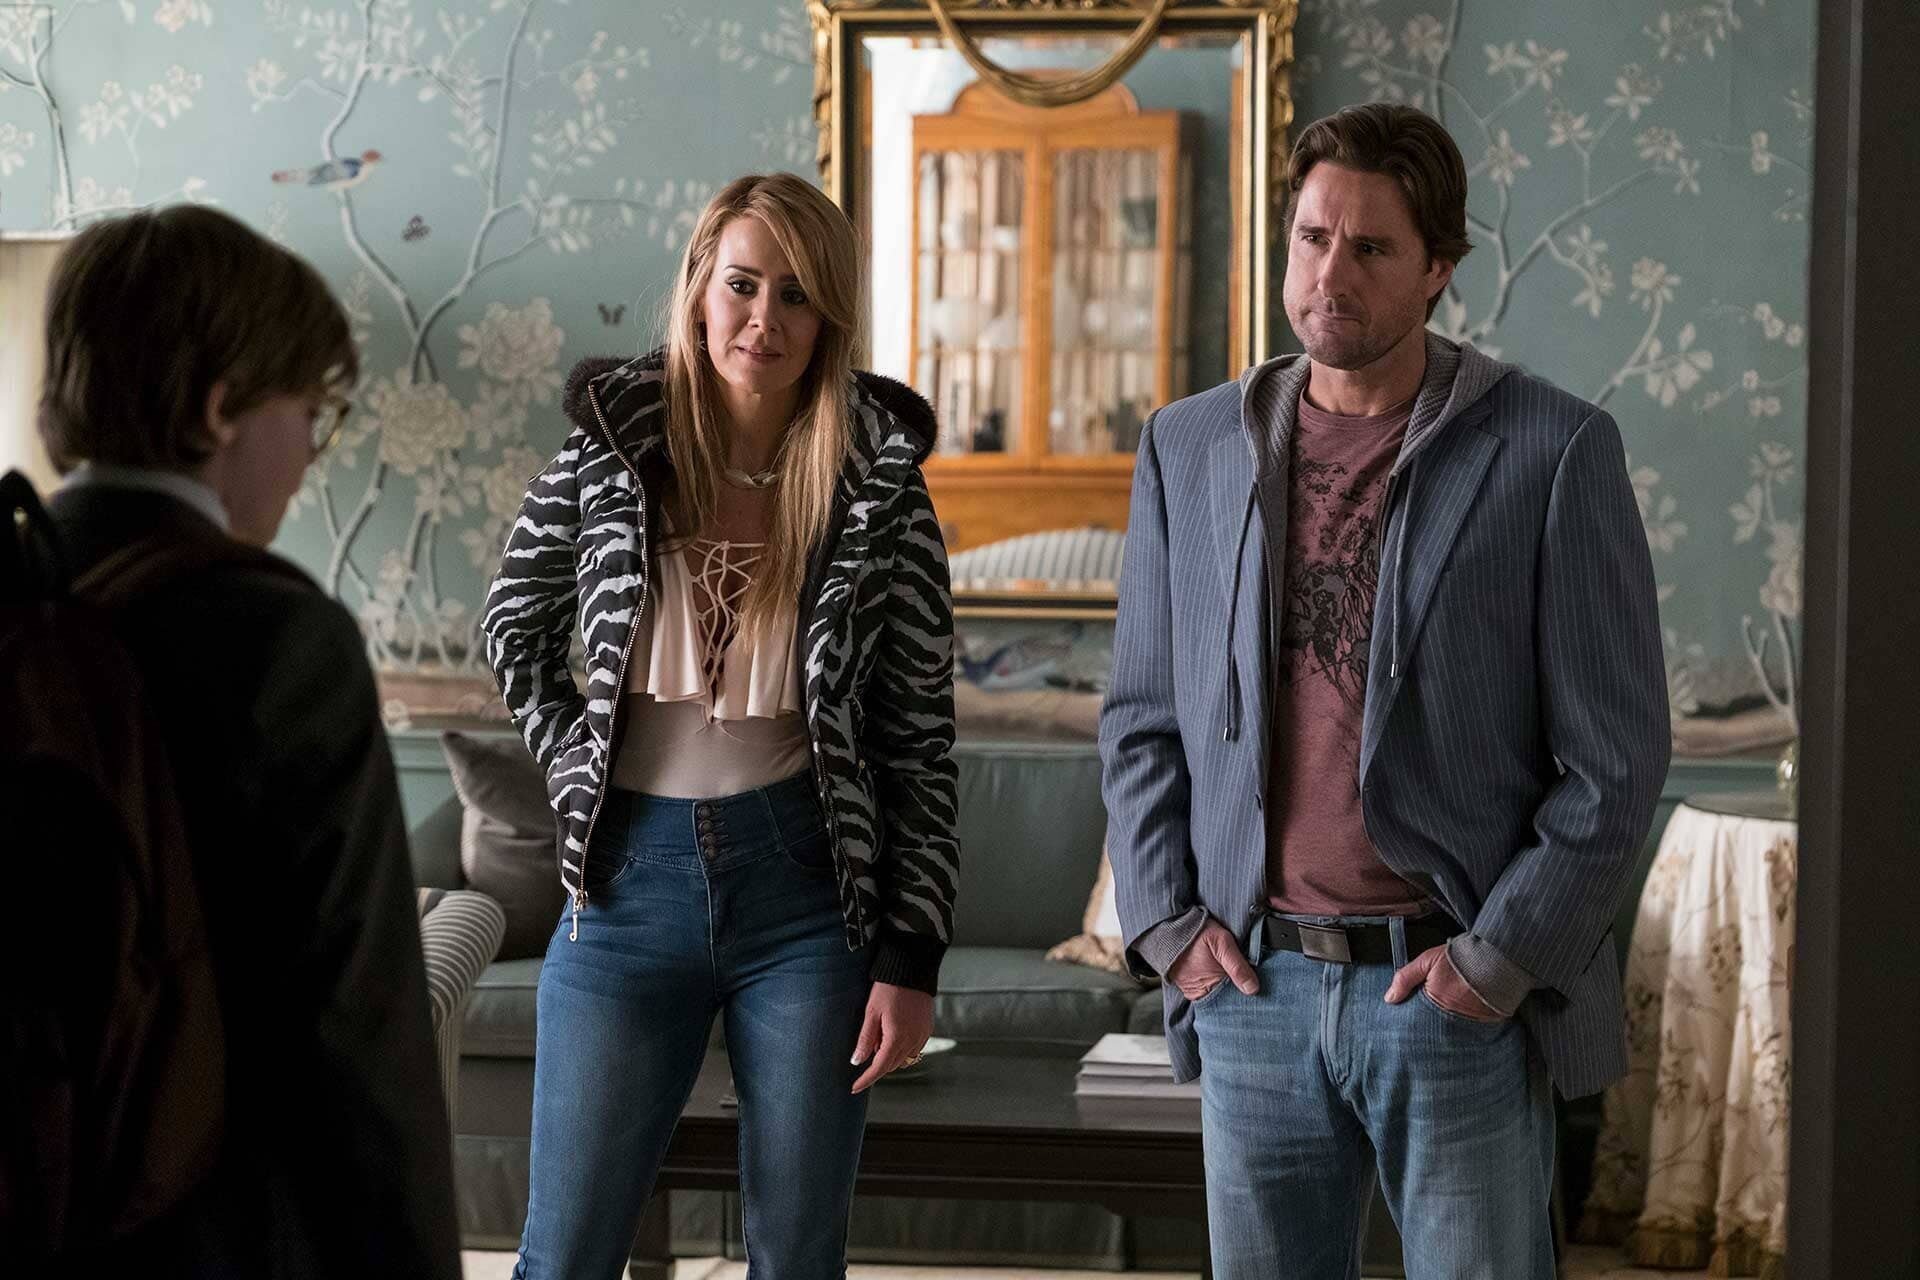 (L-r) OAKES FEGLEY as Young Theo Decker, SARAH PAULSON as Xandra and LUKE WILSON as Larry